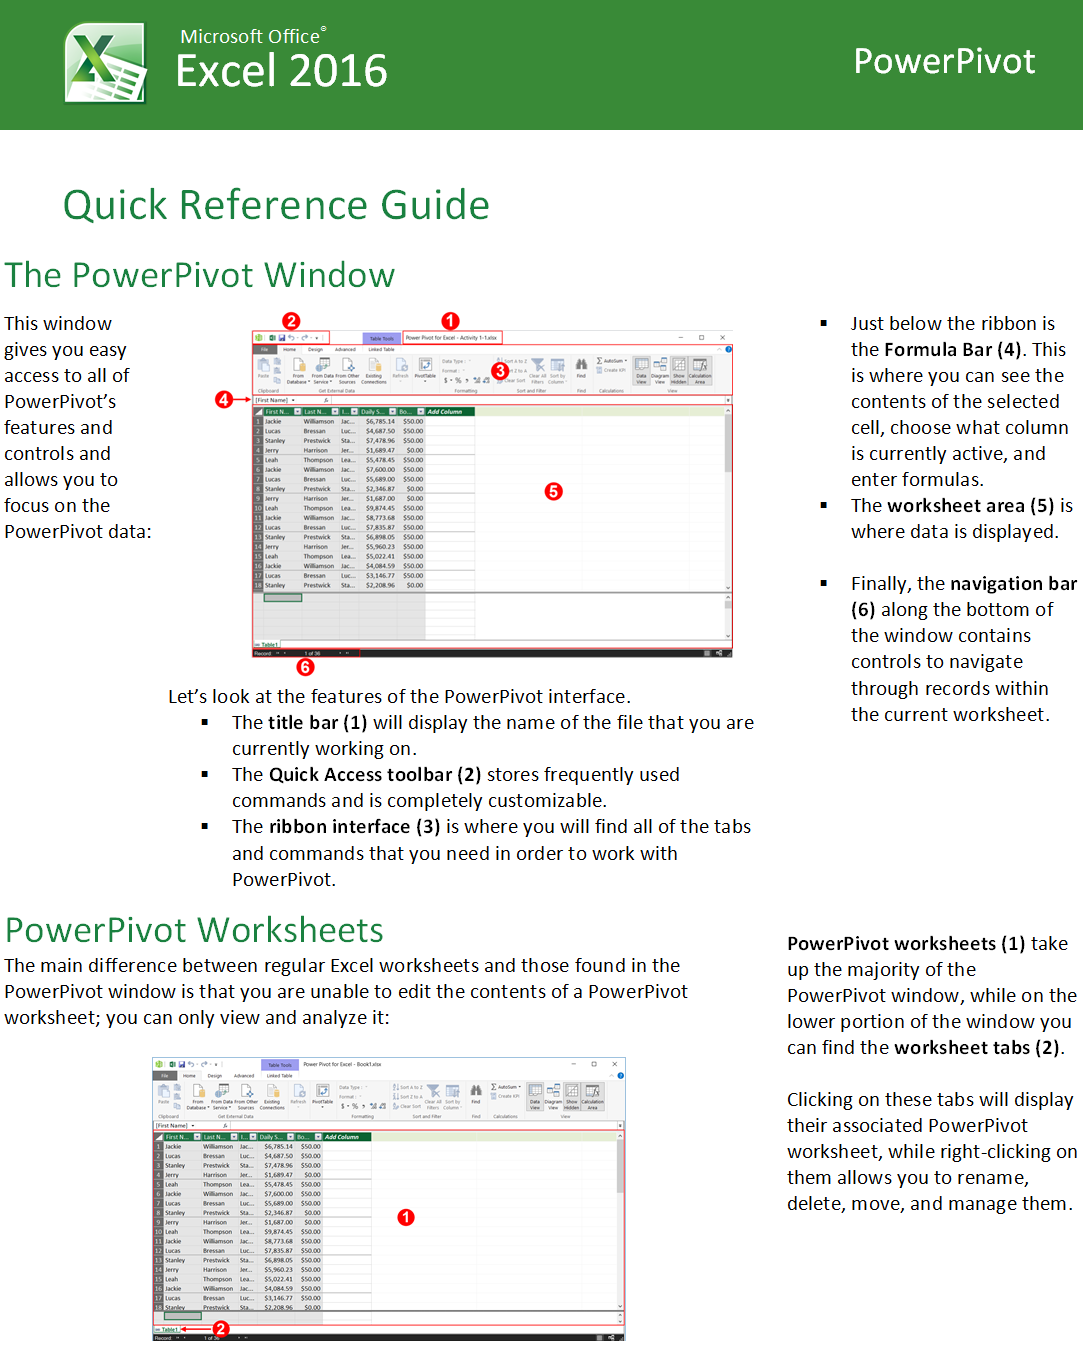 mouse training london ltd excel 2016 powerpivot quick reference guide SharePoint 2013 Quick Reference Sheet SharePoint Cheat Sheet 2016